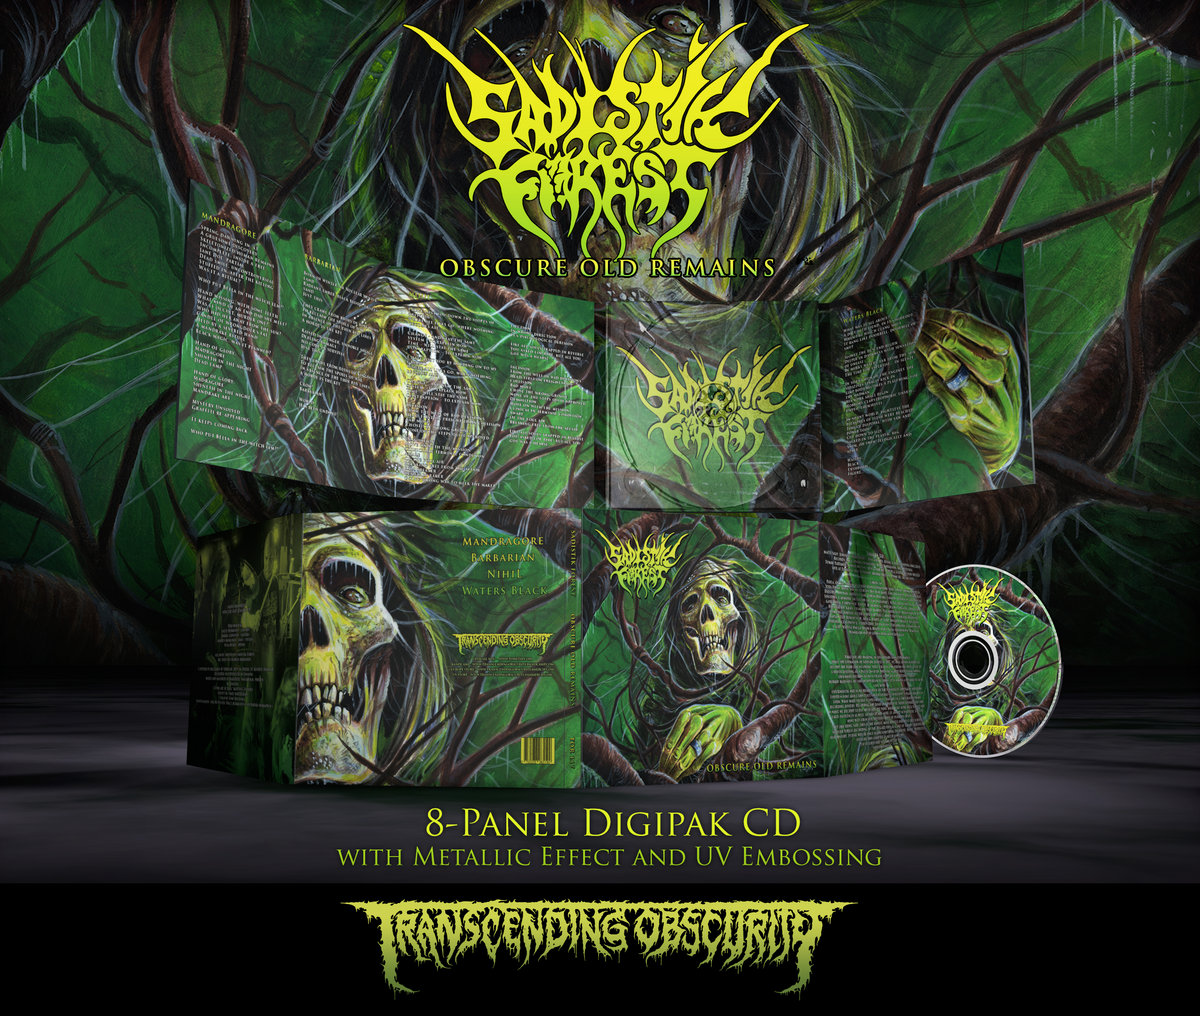 SADISTIK FOREST - Obscure Old Remains 8-Panel Digipak CD with Metallic Effect and UV Embossing